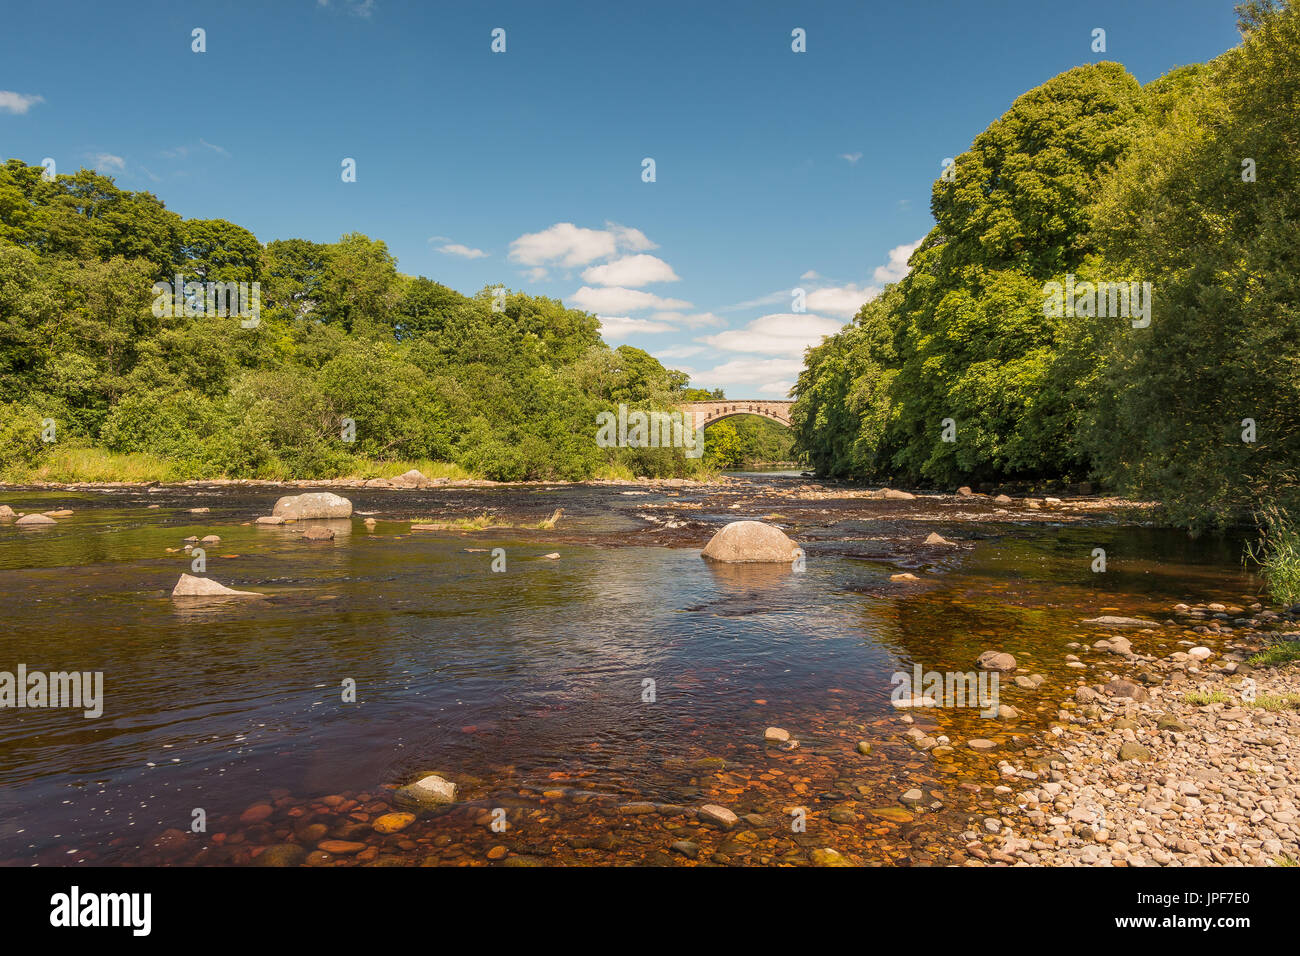 Teesdale Landscape - Winston Bridge and the River Tees on a summer afternoon July 2017 with copy space Stock Photo